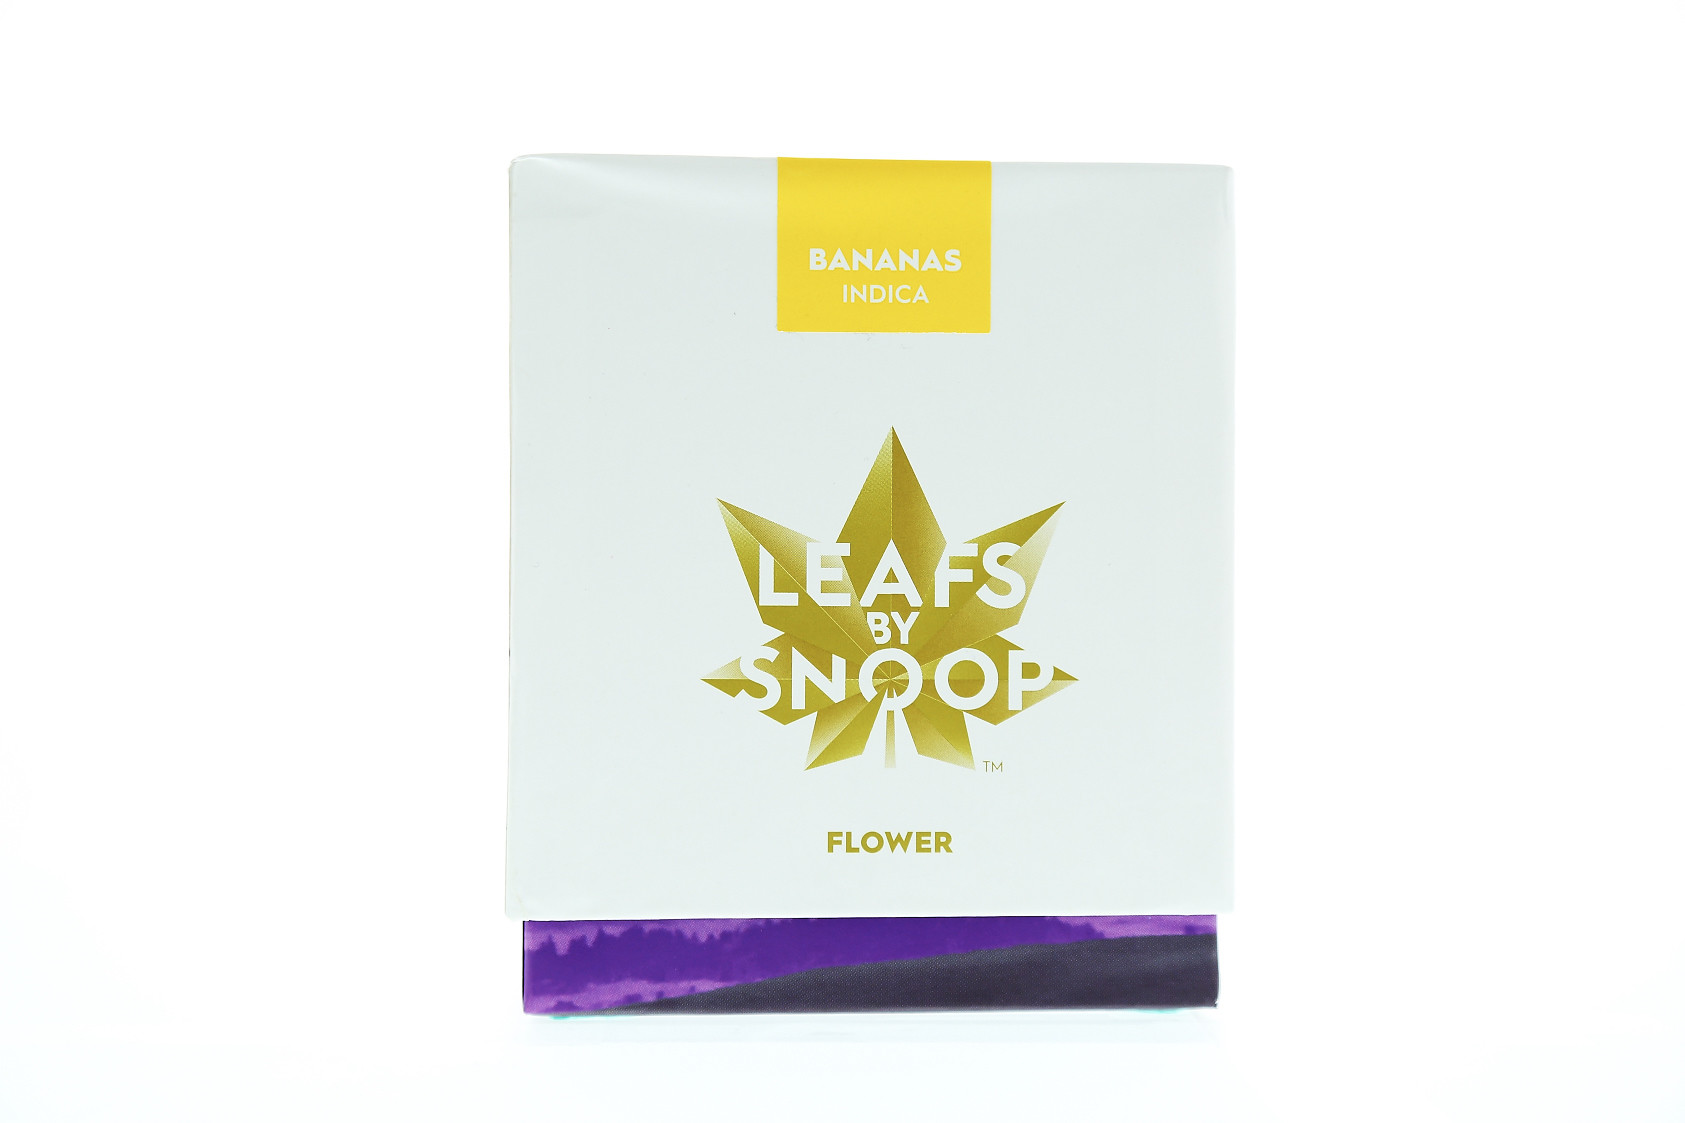 <p>Bananas is a strain that is comprised of Ghost OG, Skunk #1, and Neville's Haze. Bananas is known to have a subtle, sweet aroma of banana taffy. It's flavor profile is predominantly kushy, with a mild sweetness hidden in all that OG goodness. This indica dominant strain provides a very strong, full body stone, that should make you feel great.</p>